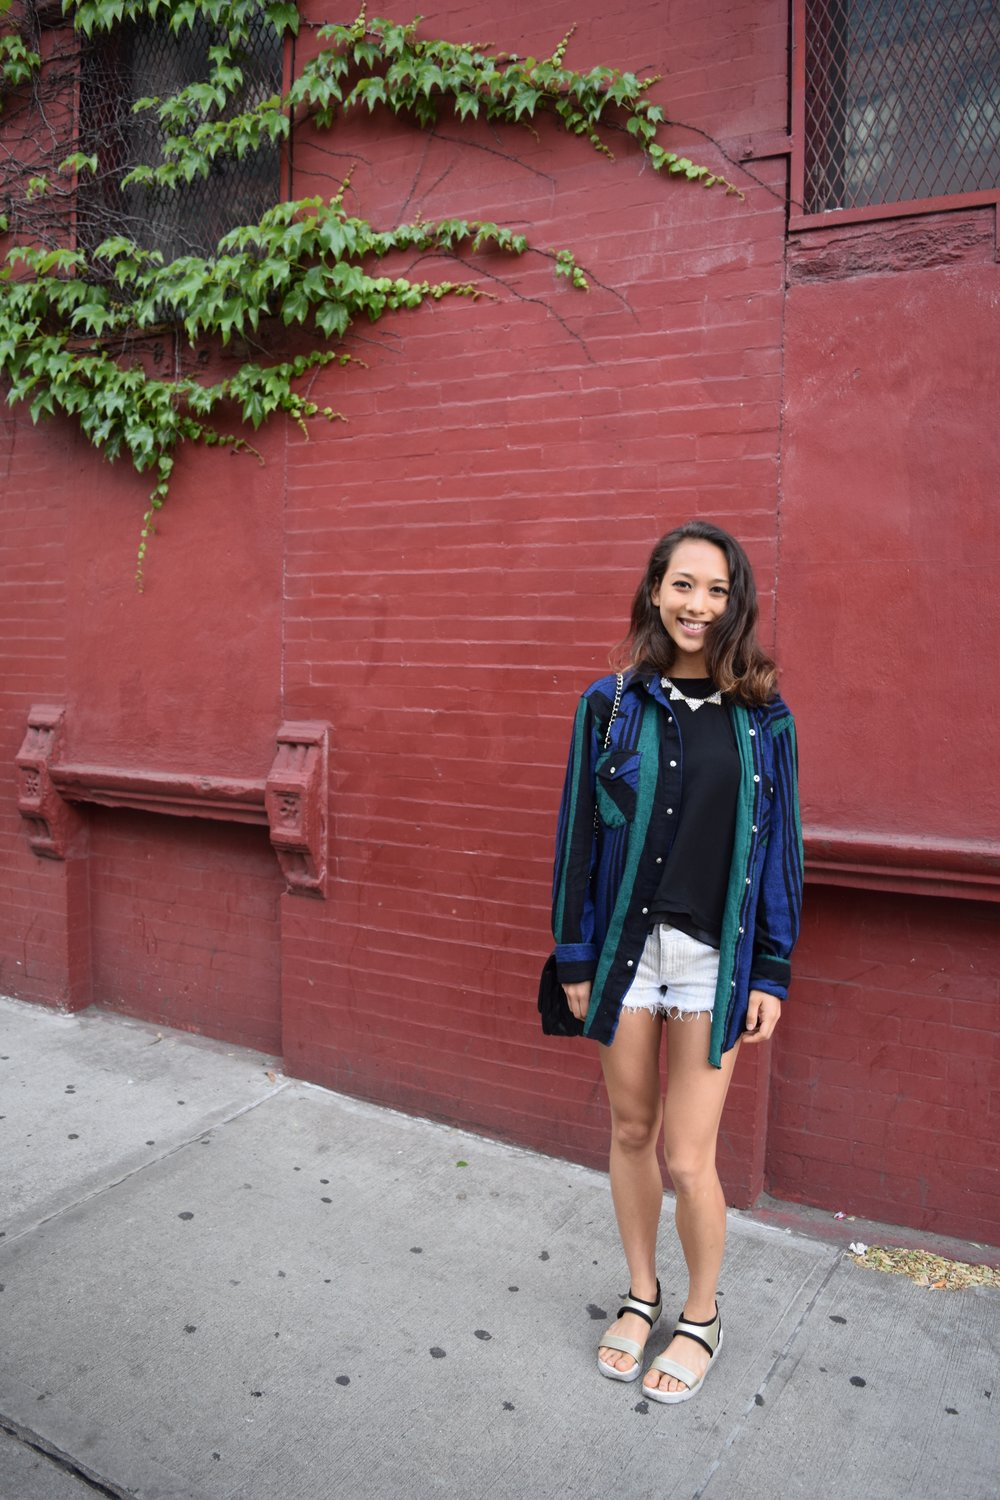 Guest Post by Anna Wildman from Running Vegan NYC.  Anna is a plant-based health and fitness blogger living in New York City. She enjoys running, cooking, and taking pictures of the food she cooks (as a millennial would). You can follow her on her website, runningvegannyc.com, or on Instagram, @runningvegannyc .